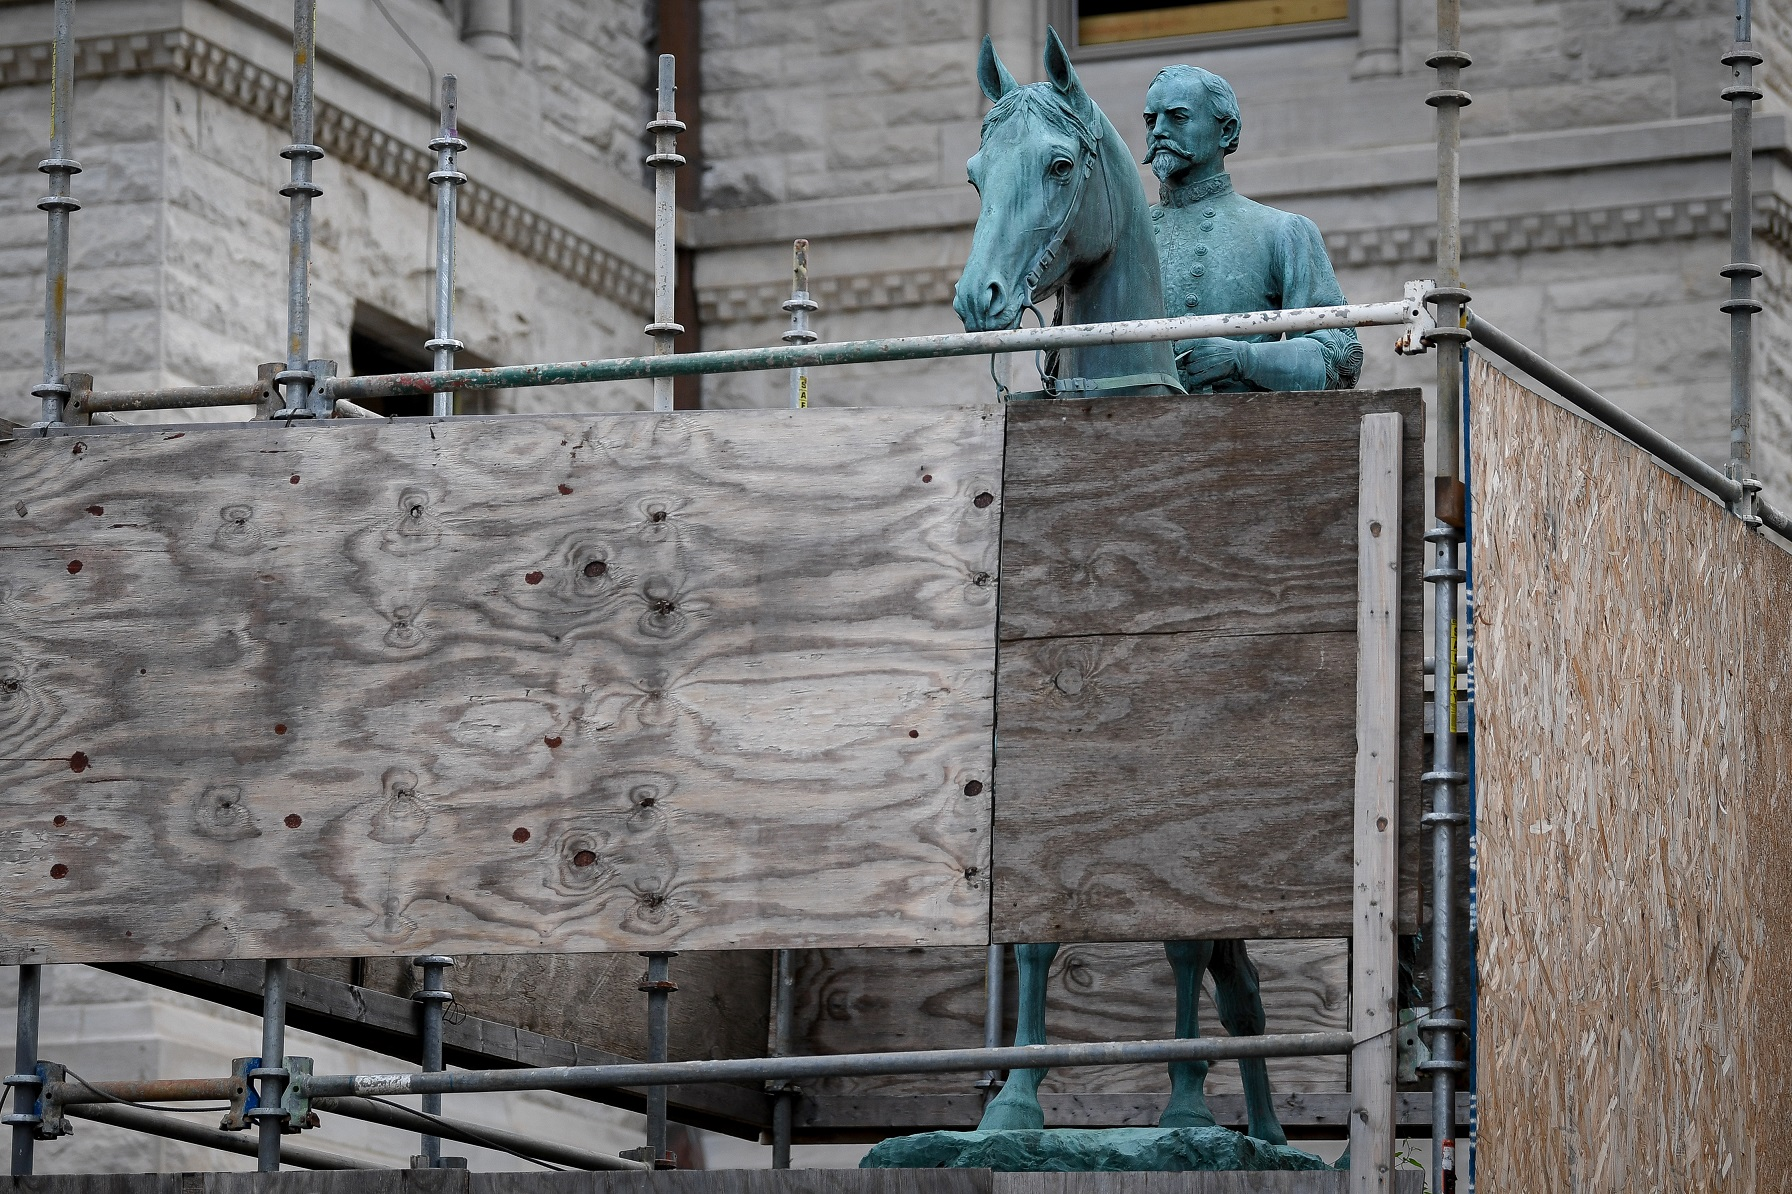 A monument to Confederate General John Hunt Morgan stands encased in a protective scaffolding because of local construction, outside the Old Courthouse in Lexington, Ky., U.S., August 15, 2017.  REUTERS/Bryan Woolston - RTS1BW57